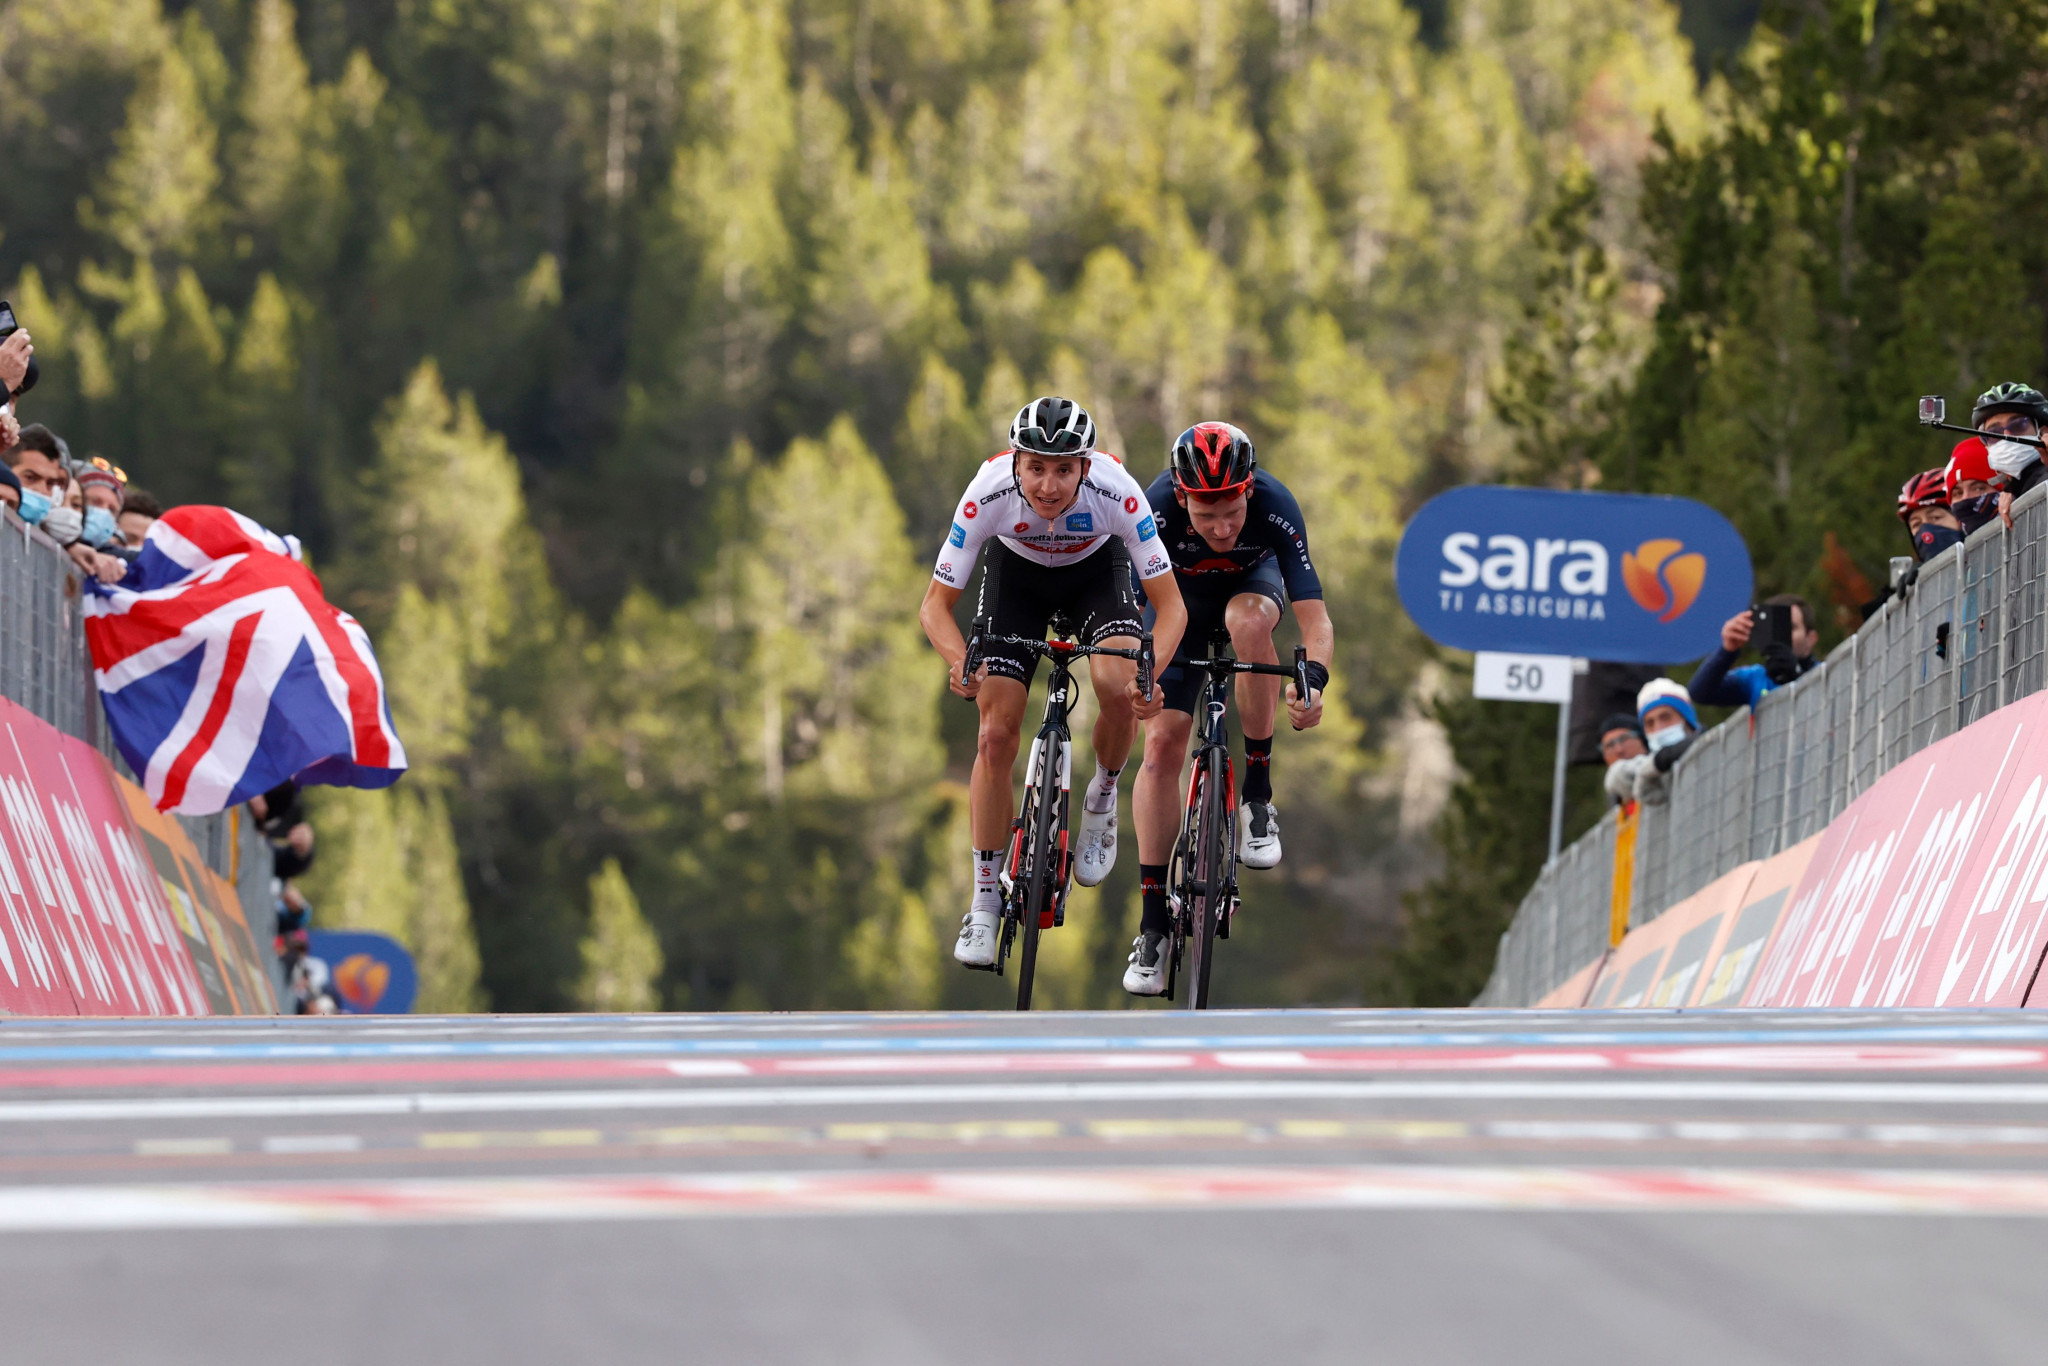 Jai Hindley held off Tao Geoghegan Hart in a sprint finish to win stage 18